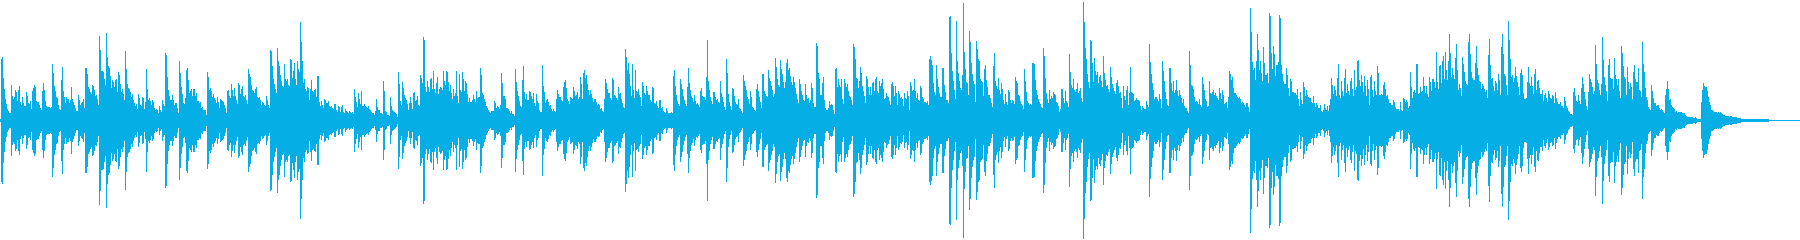 Guitar duo of classical masterpiece Nocturne's reproduced waveform